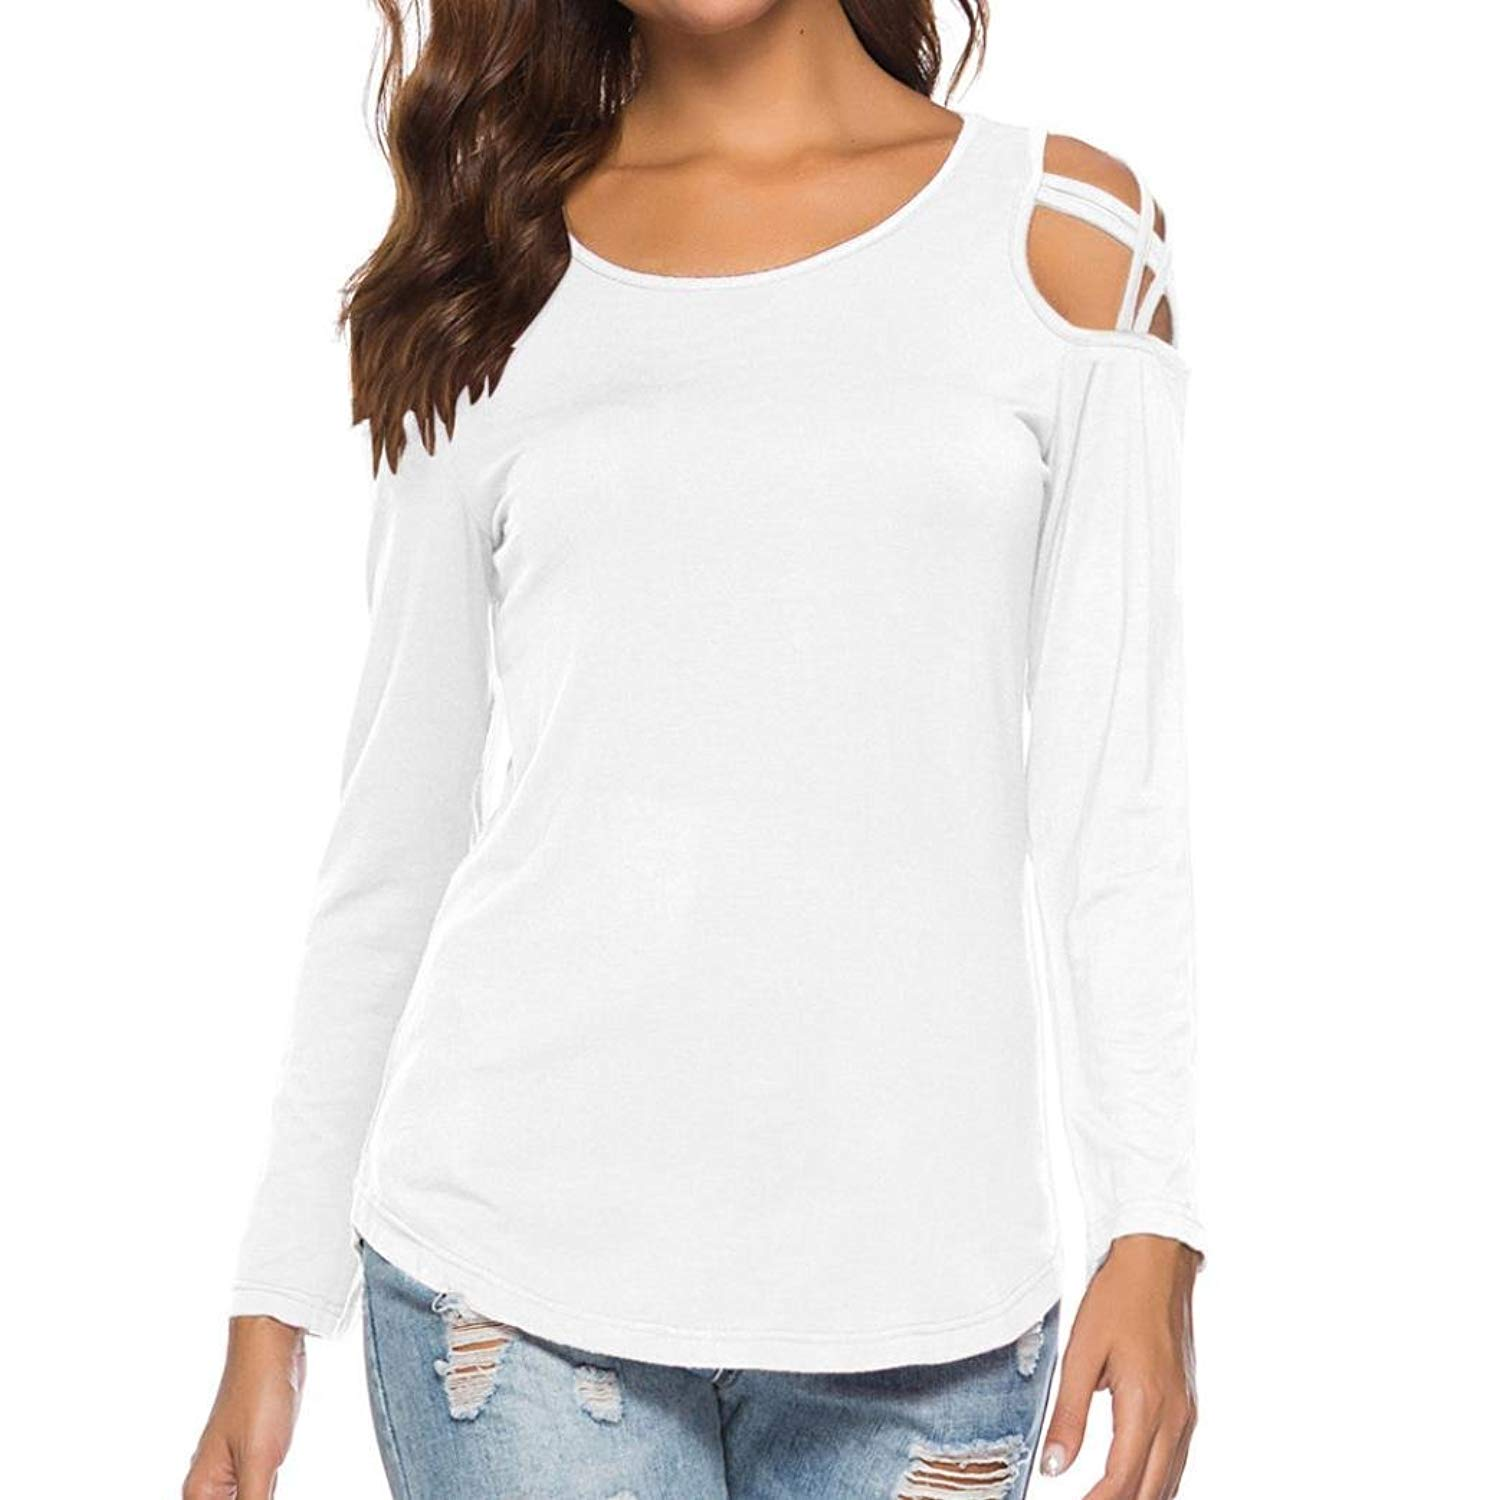 b0c3258420e0e2 Get Quotations · HTHJSCO Womens Loose Strappy Cold Shoulder Tops Basic T  Shirts